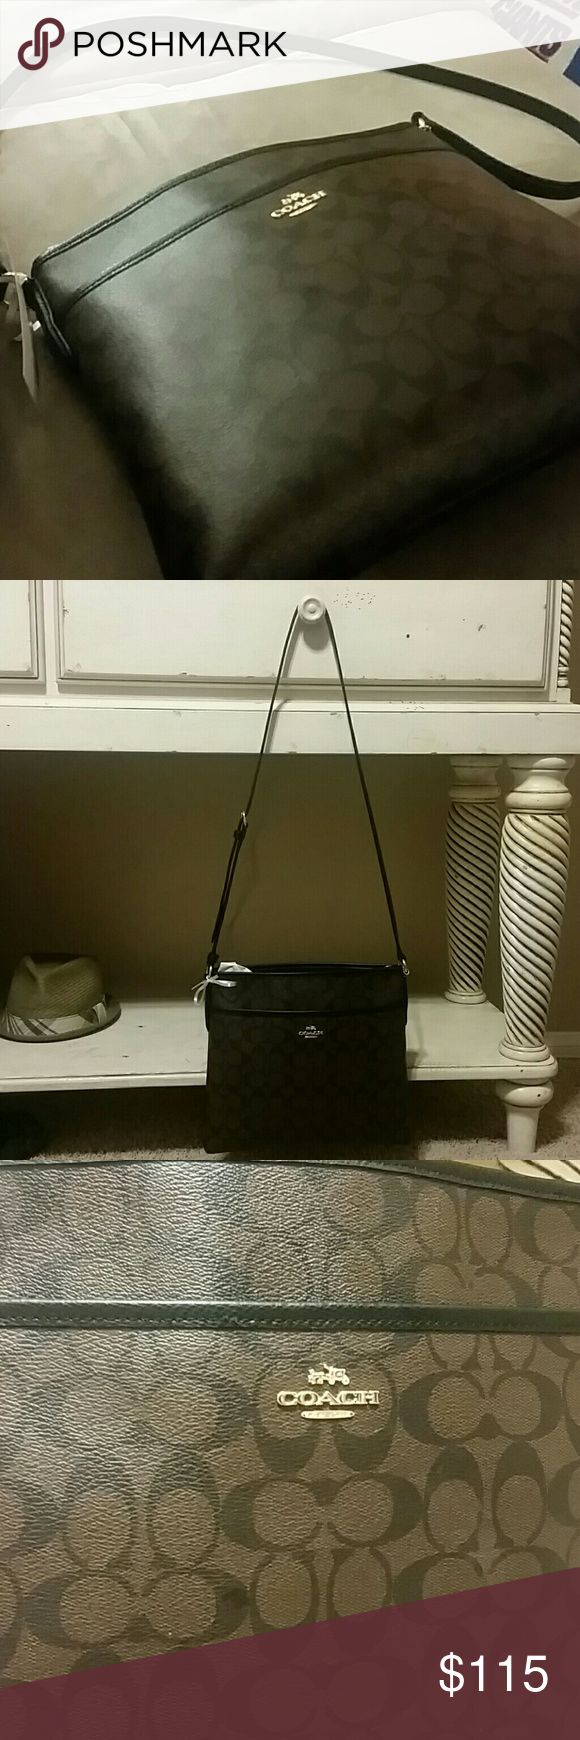 Coach File Cross body Brown Shoulder Bag Womens Coach File Cross body Shoulder Bag. Very nice, excellent condition. Nothing wrong with it, I just don't like how low on me it drops. No trades please. Coach Bags Crossbody Bags